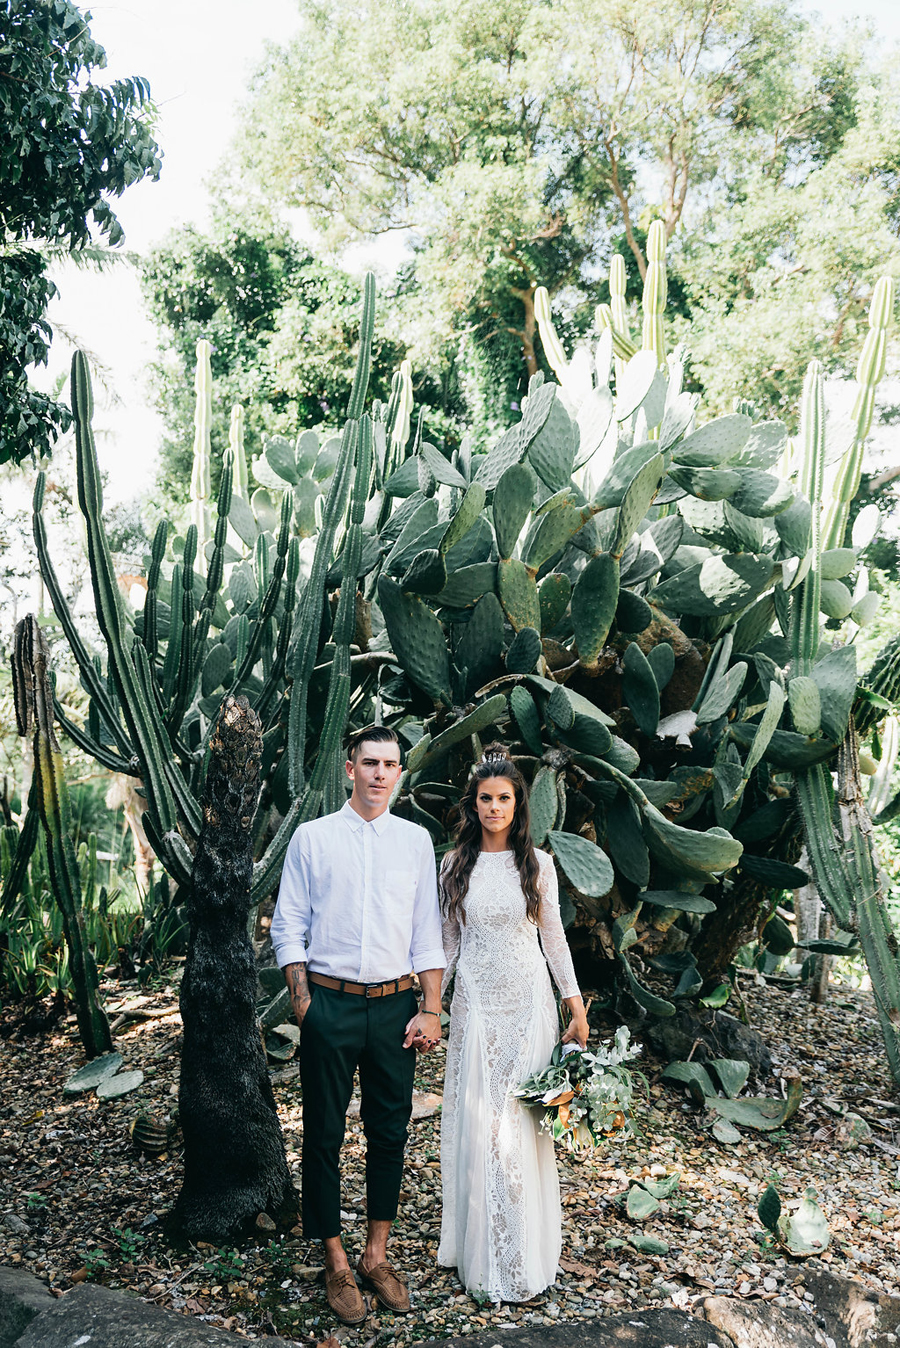 tweed-coast-weddings-wedding-venue-osteria-casuarina-figtree-pictures-photography-brittney-and-justin034.jpg